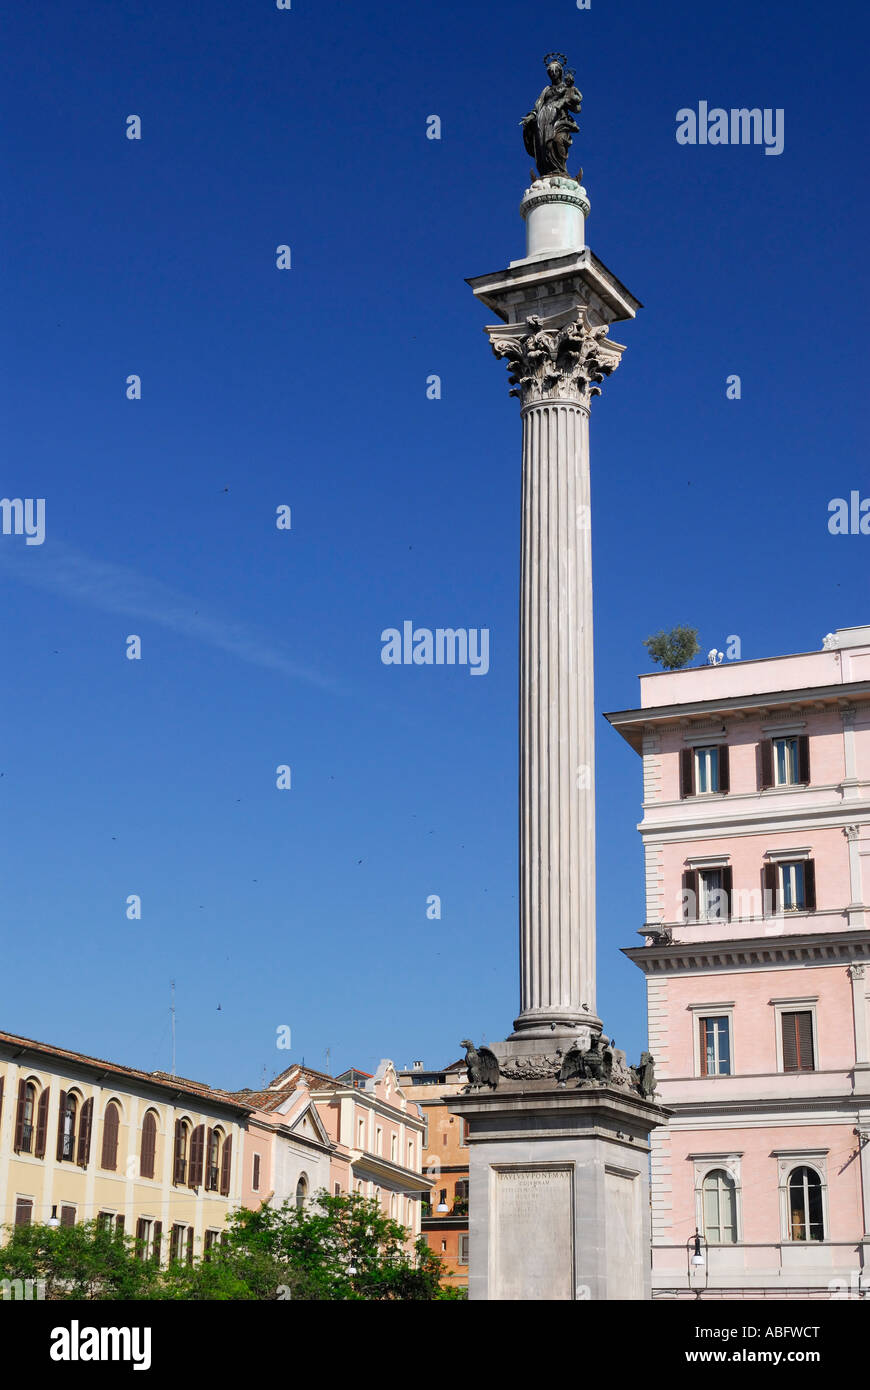 Vertical of Marian column in the Piazza at Santa Maria Maggiore Rome Italy - Stock Image